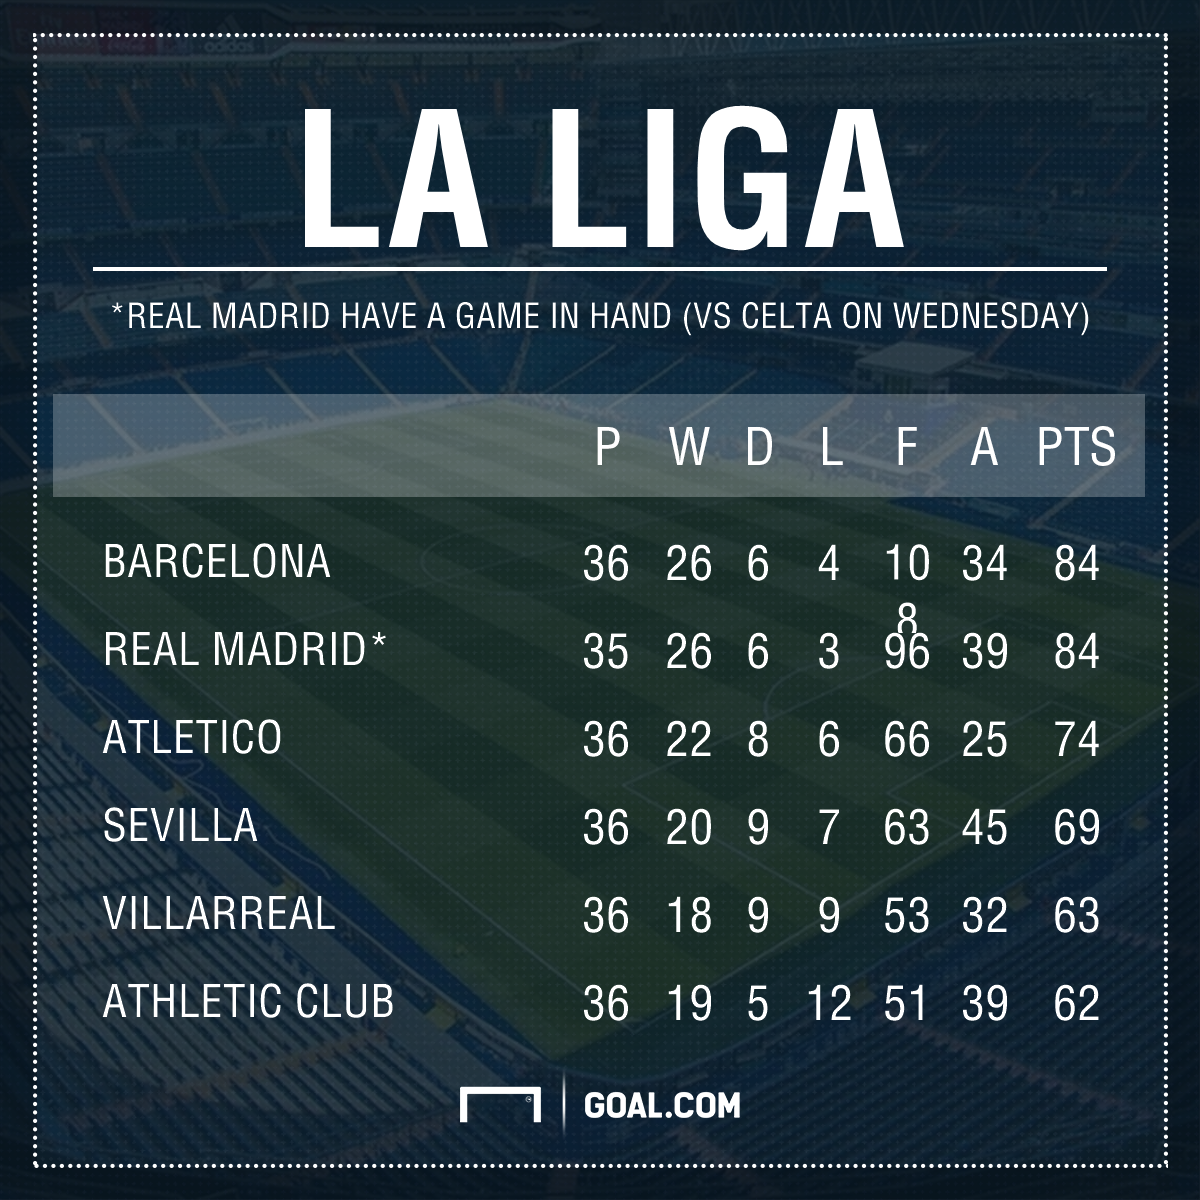 Barcelona, Madrid win as title race goes to final round